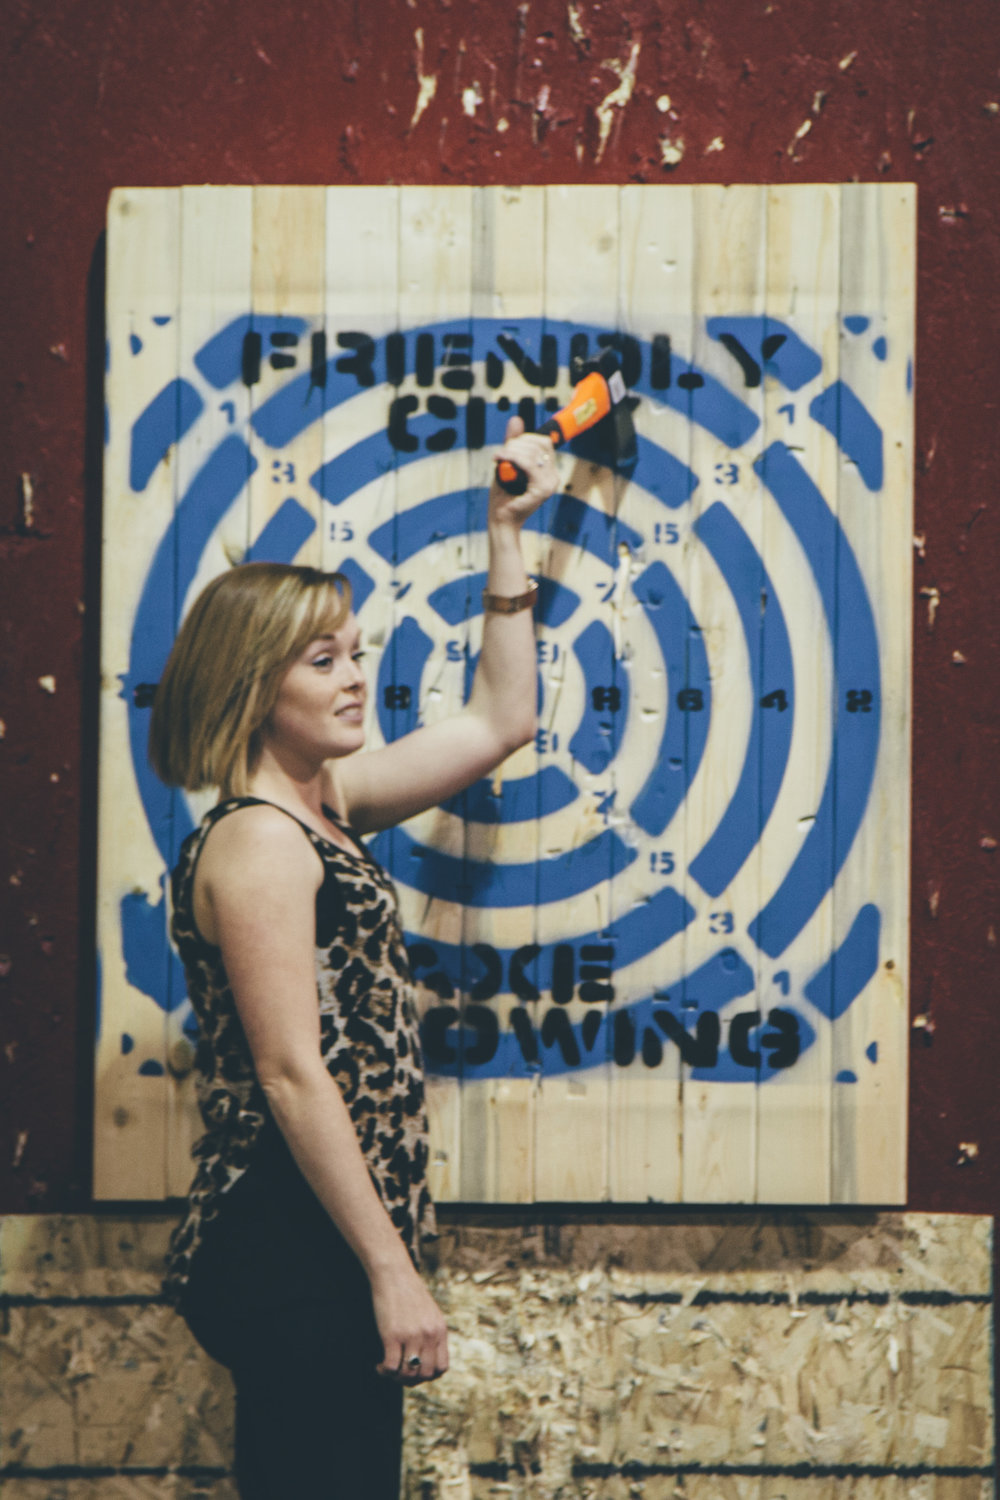 axe throwing-79.jpg